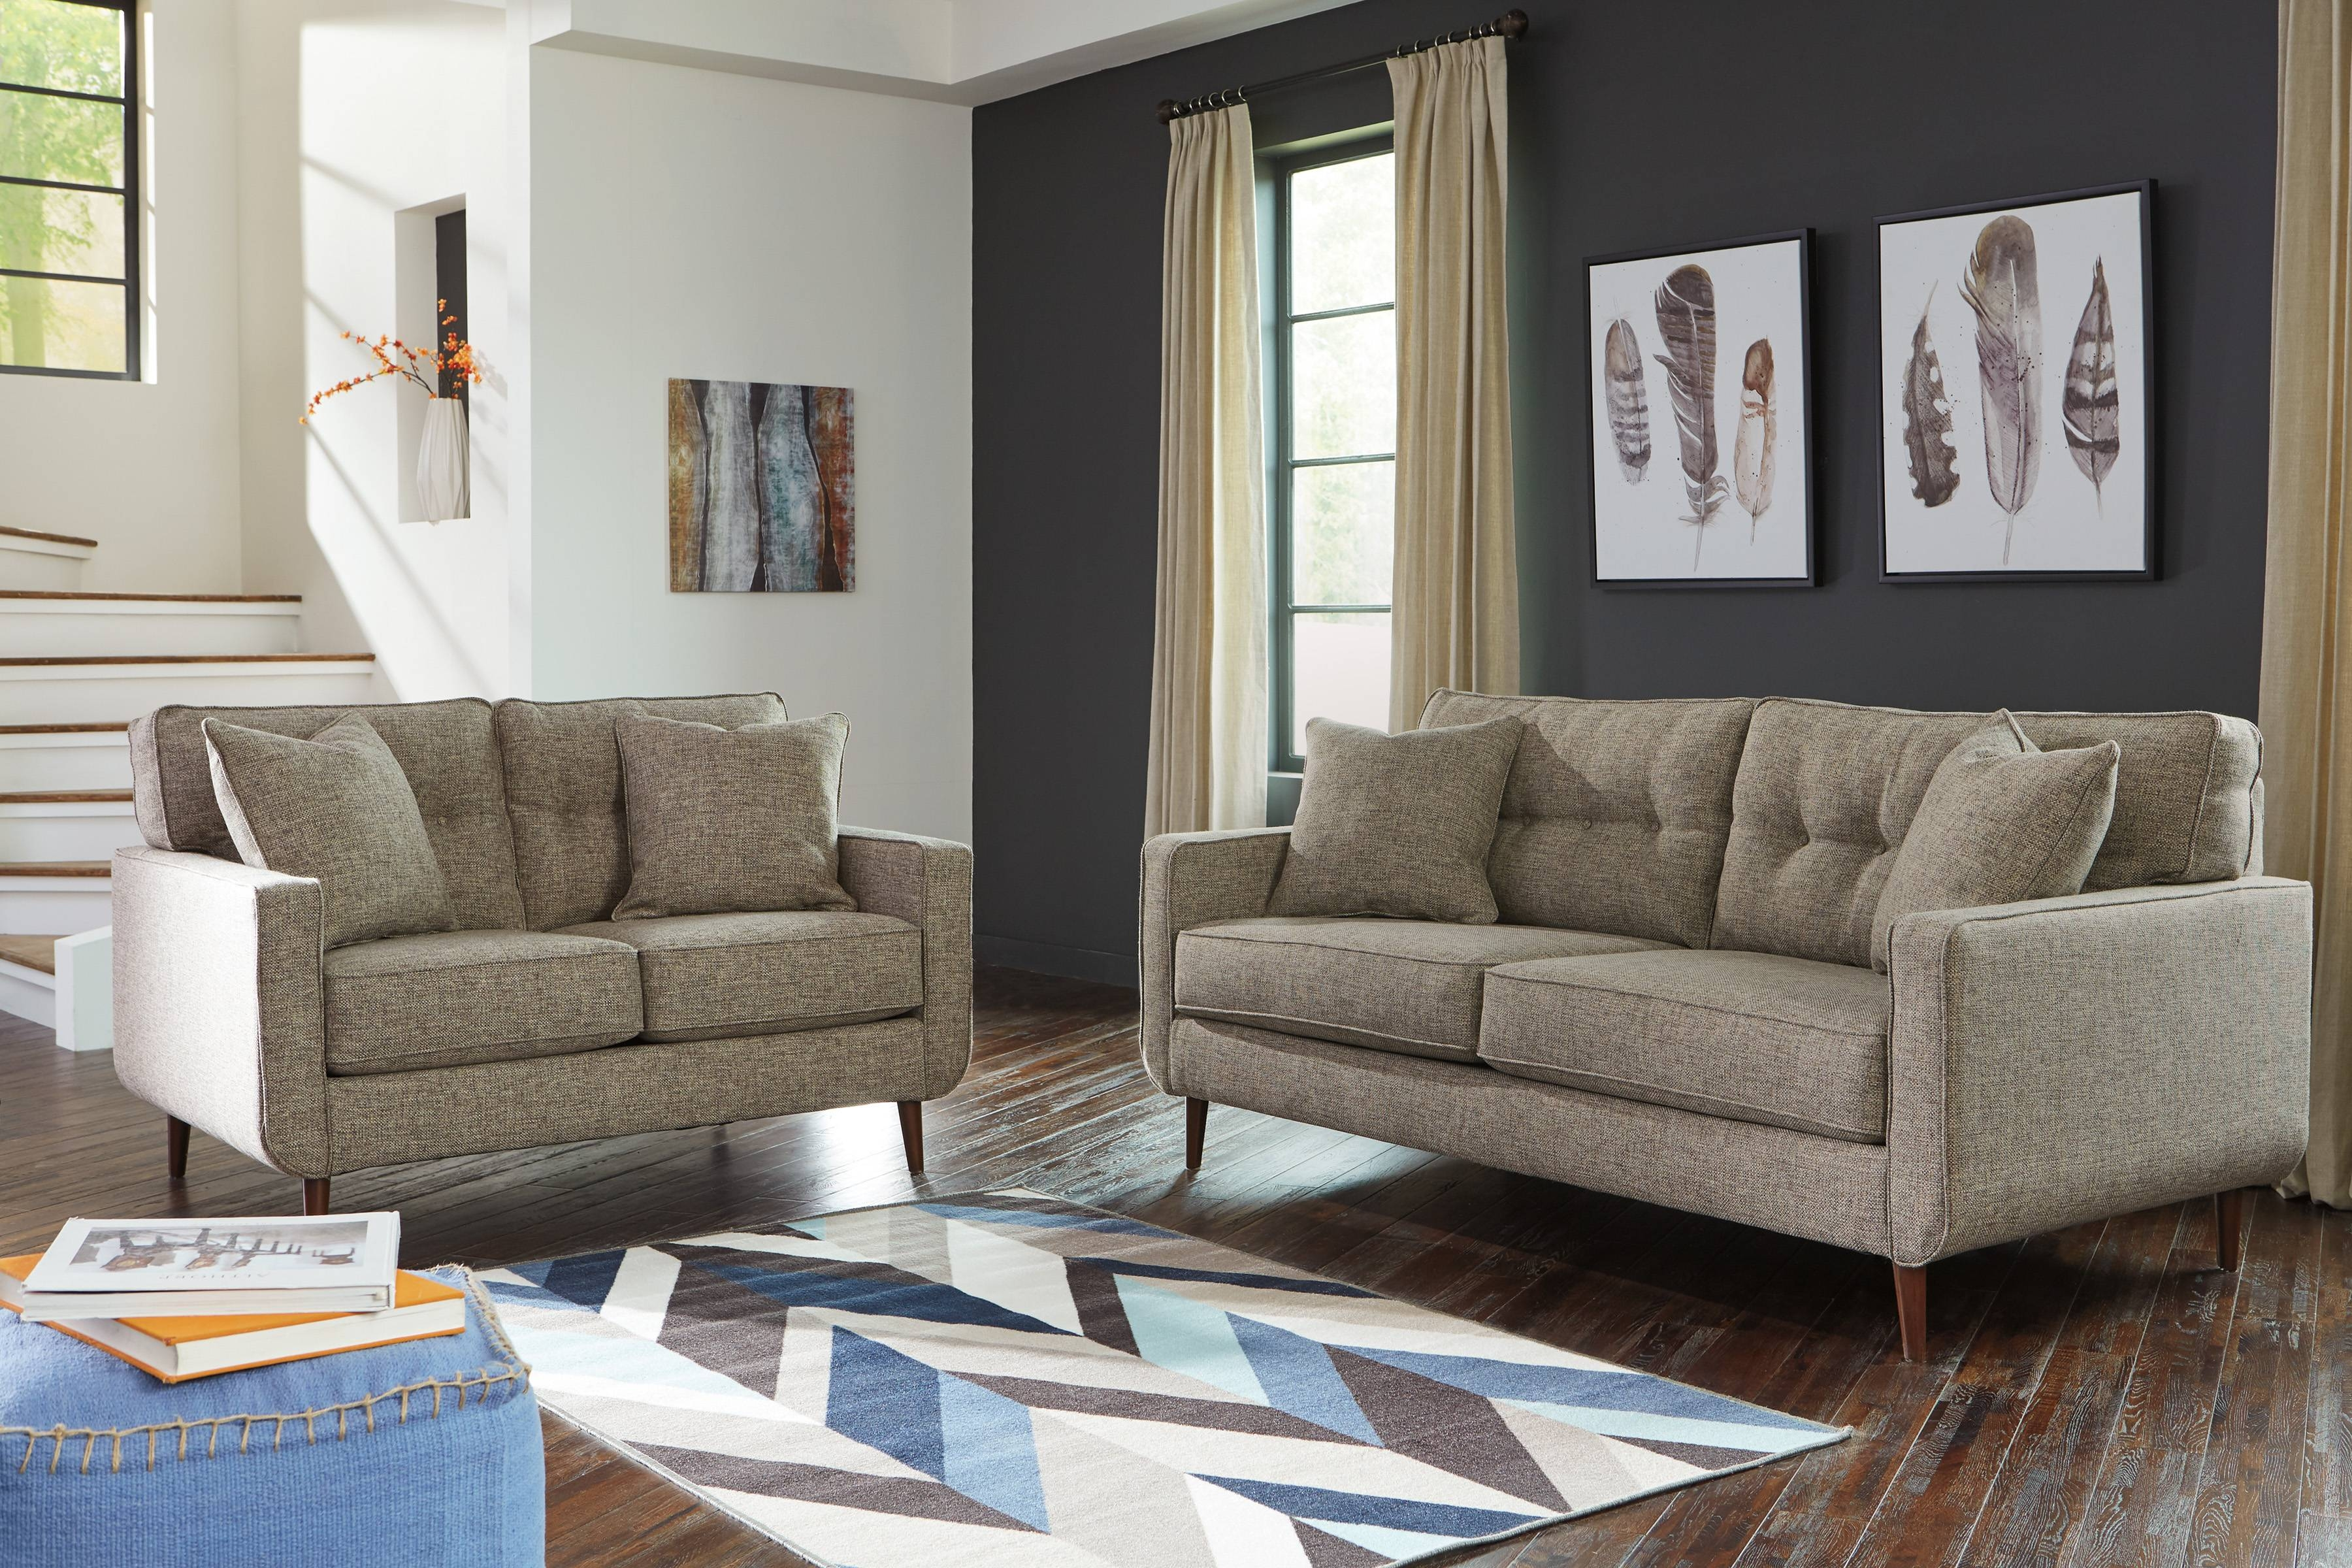 Expensive Sectional Sofas - Leather Sectional Sofa intended for Expensive Sectional Sofas (Image 9 of 30)